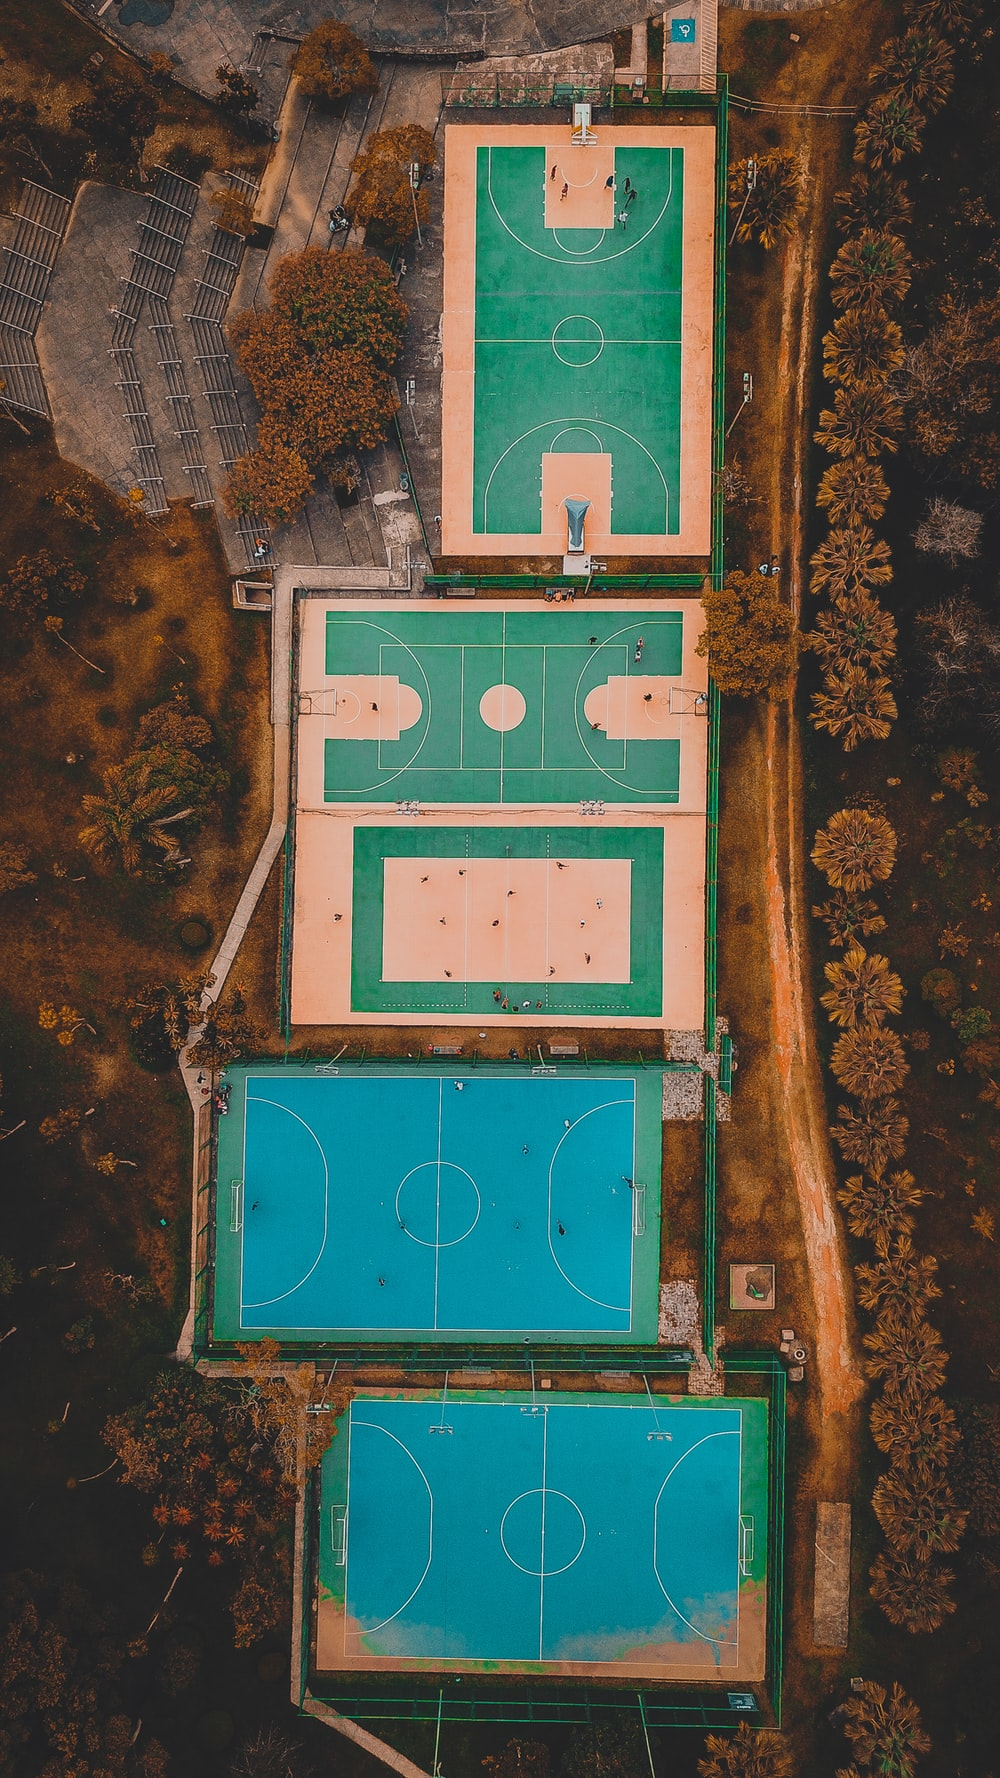 five blue and green floored sports court aerial view